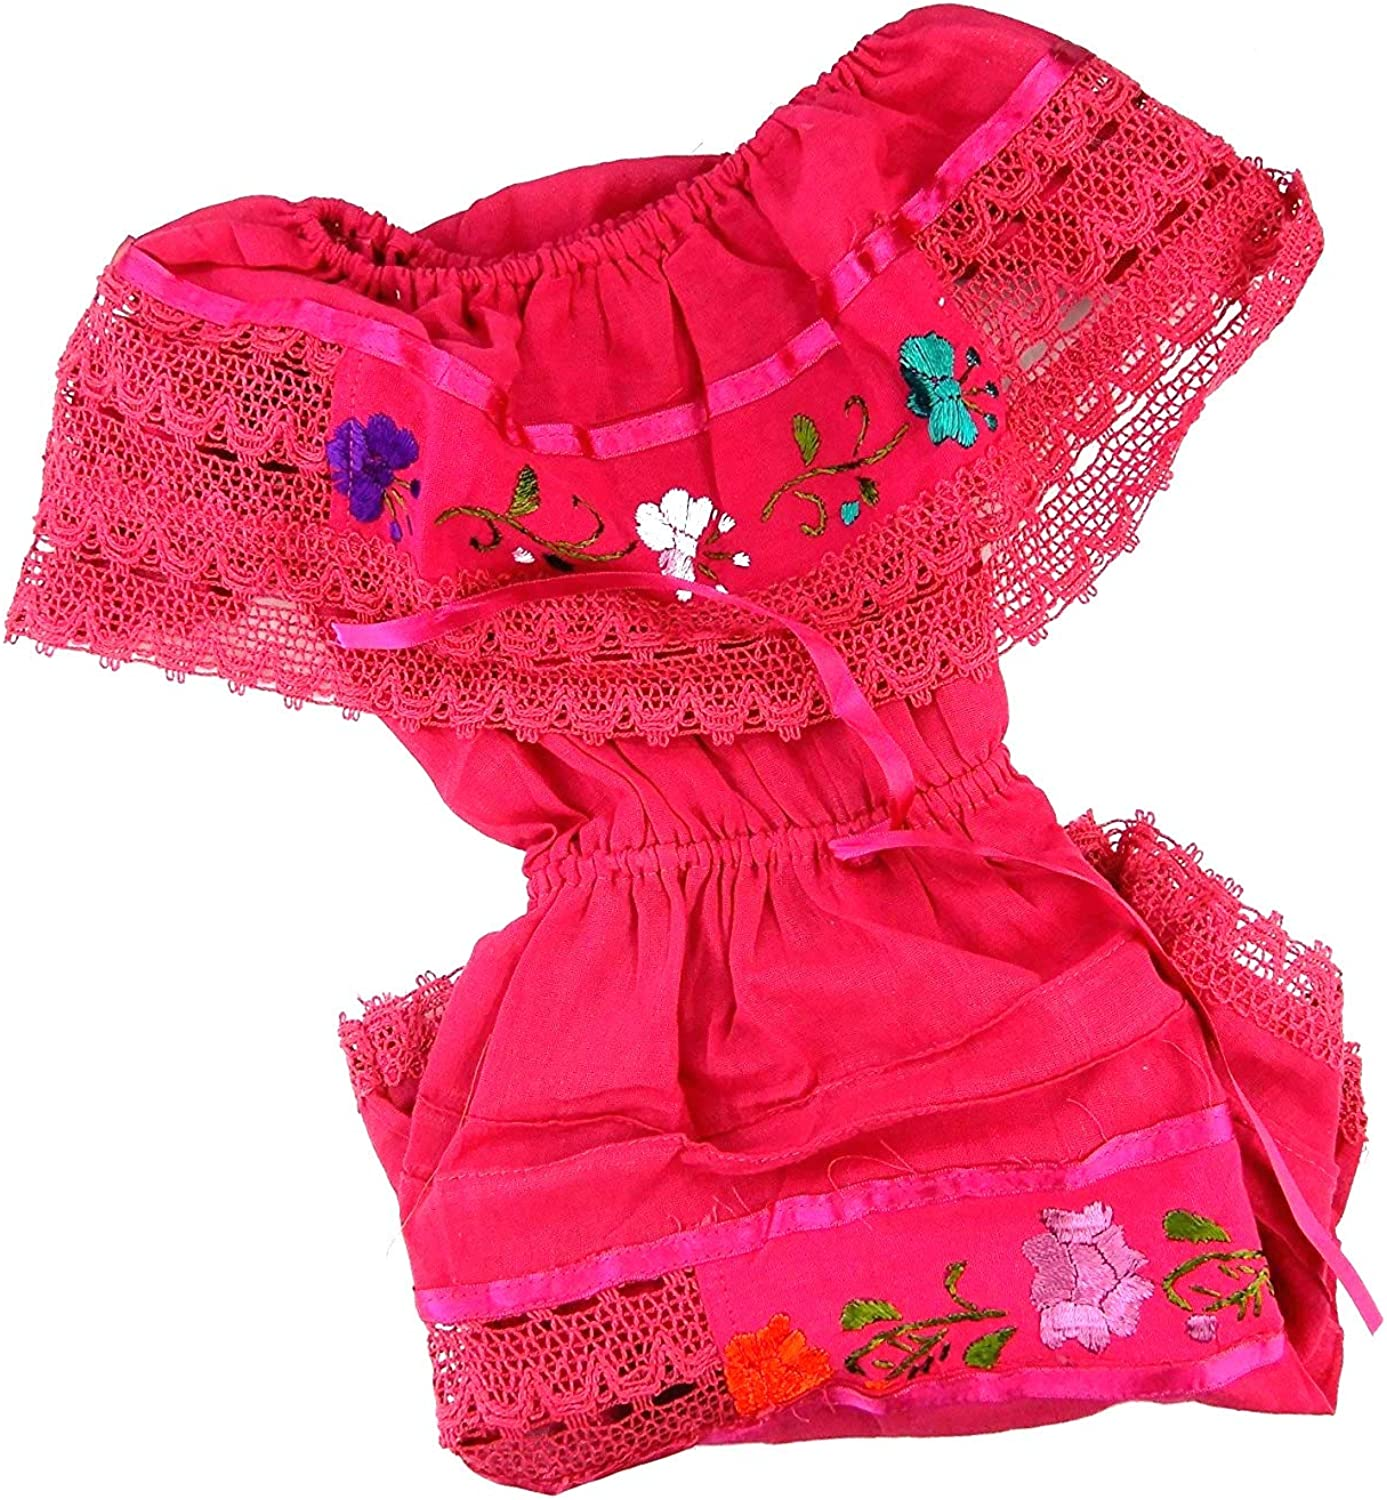 Mexican Infant trust Dress White Size 0 of Day Factory outlet Coco Dead The